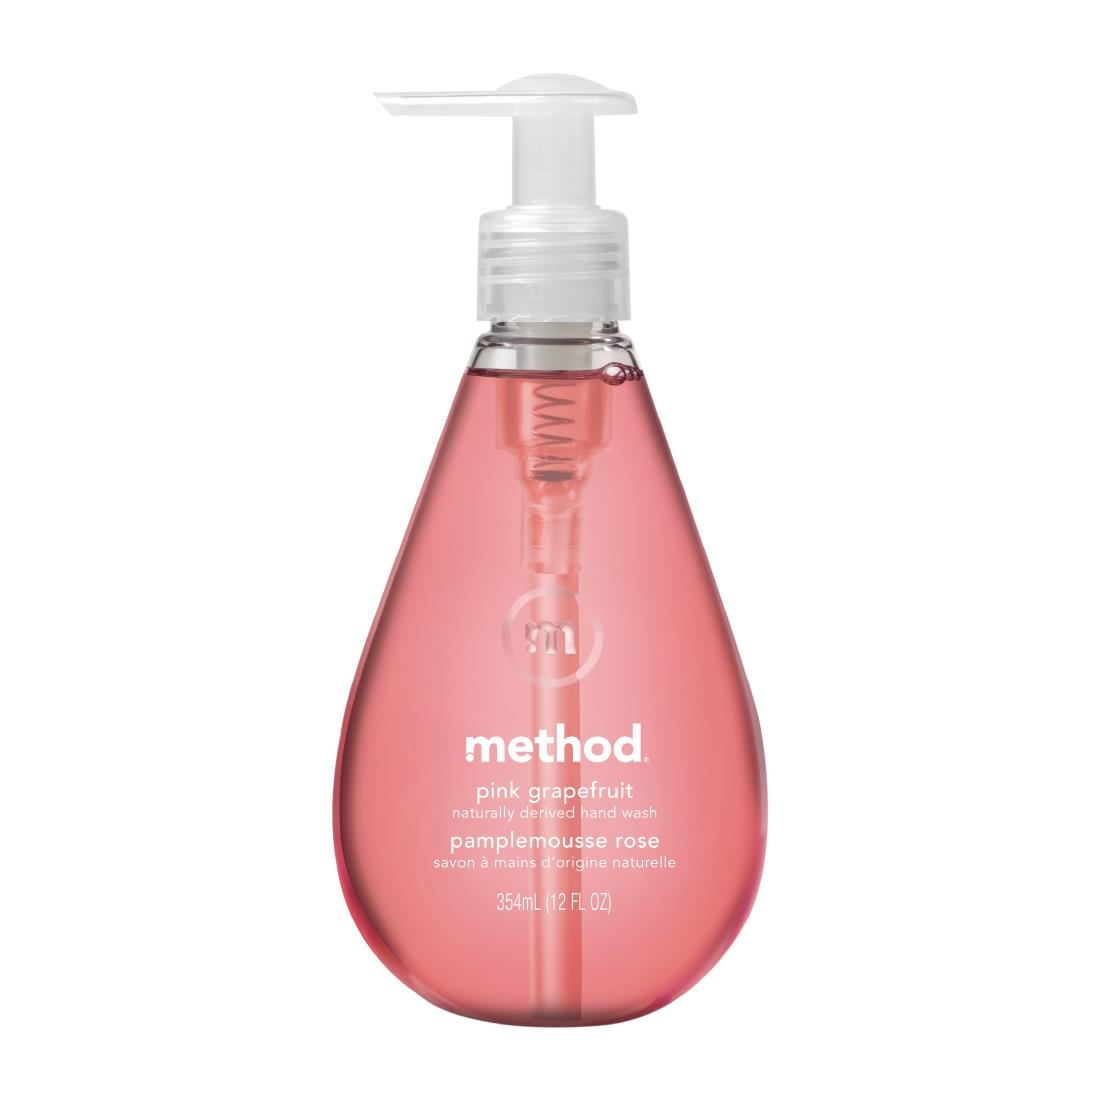 Image of Method Perfumed Liquid Hand Soap Pink Grapefruit 354ml (6 Pack) Pack of 6